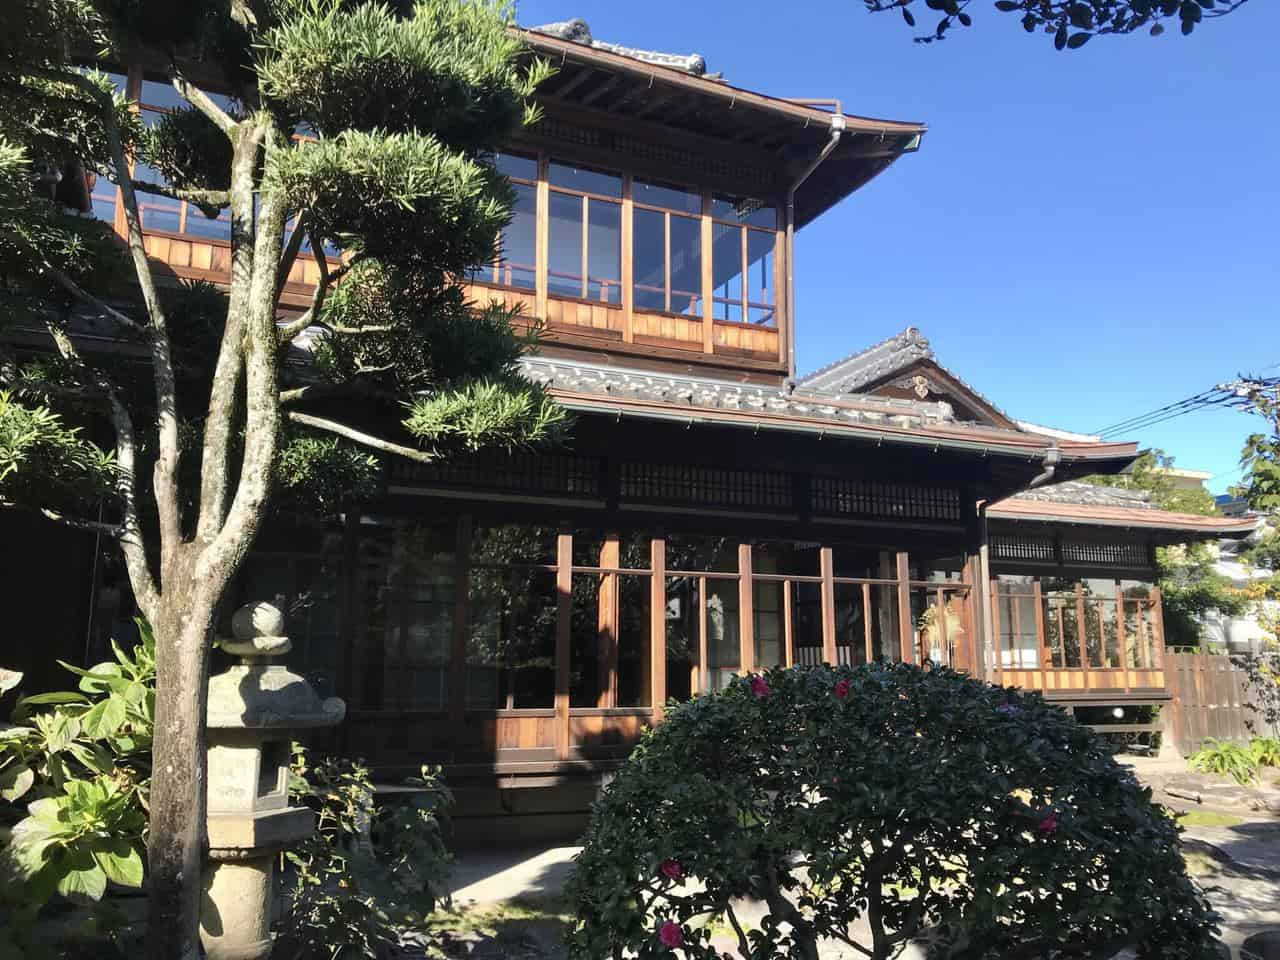 Bathe in style in Beppu and Yufuin's healing waters